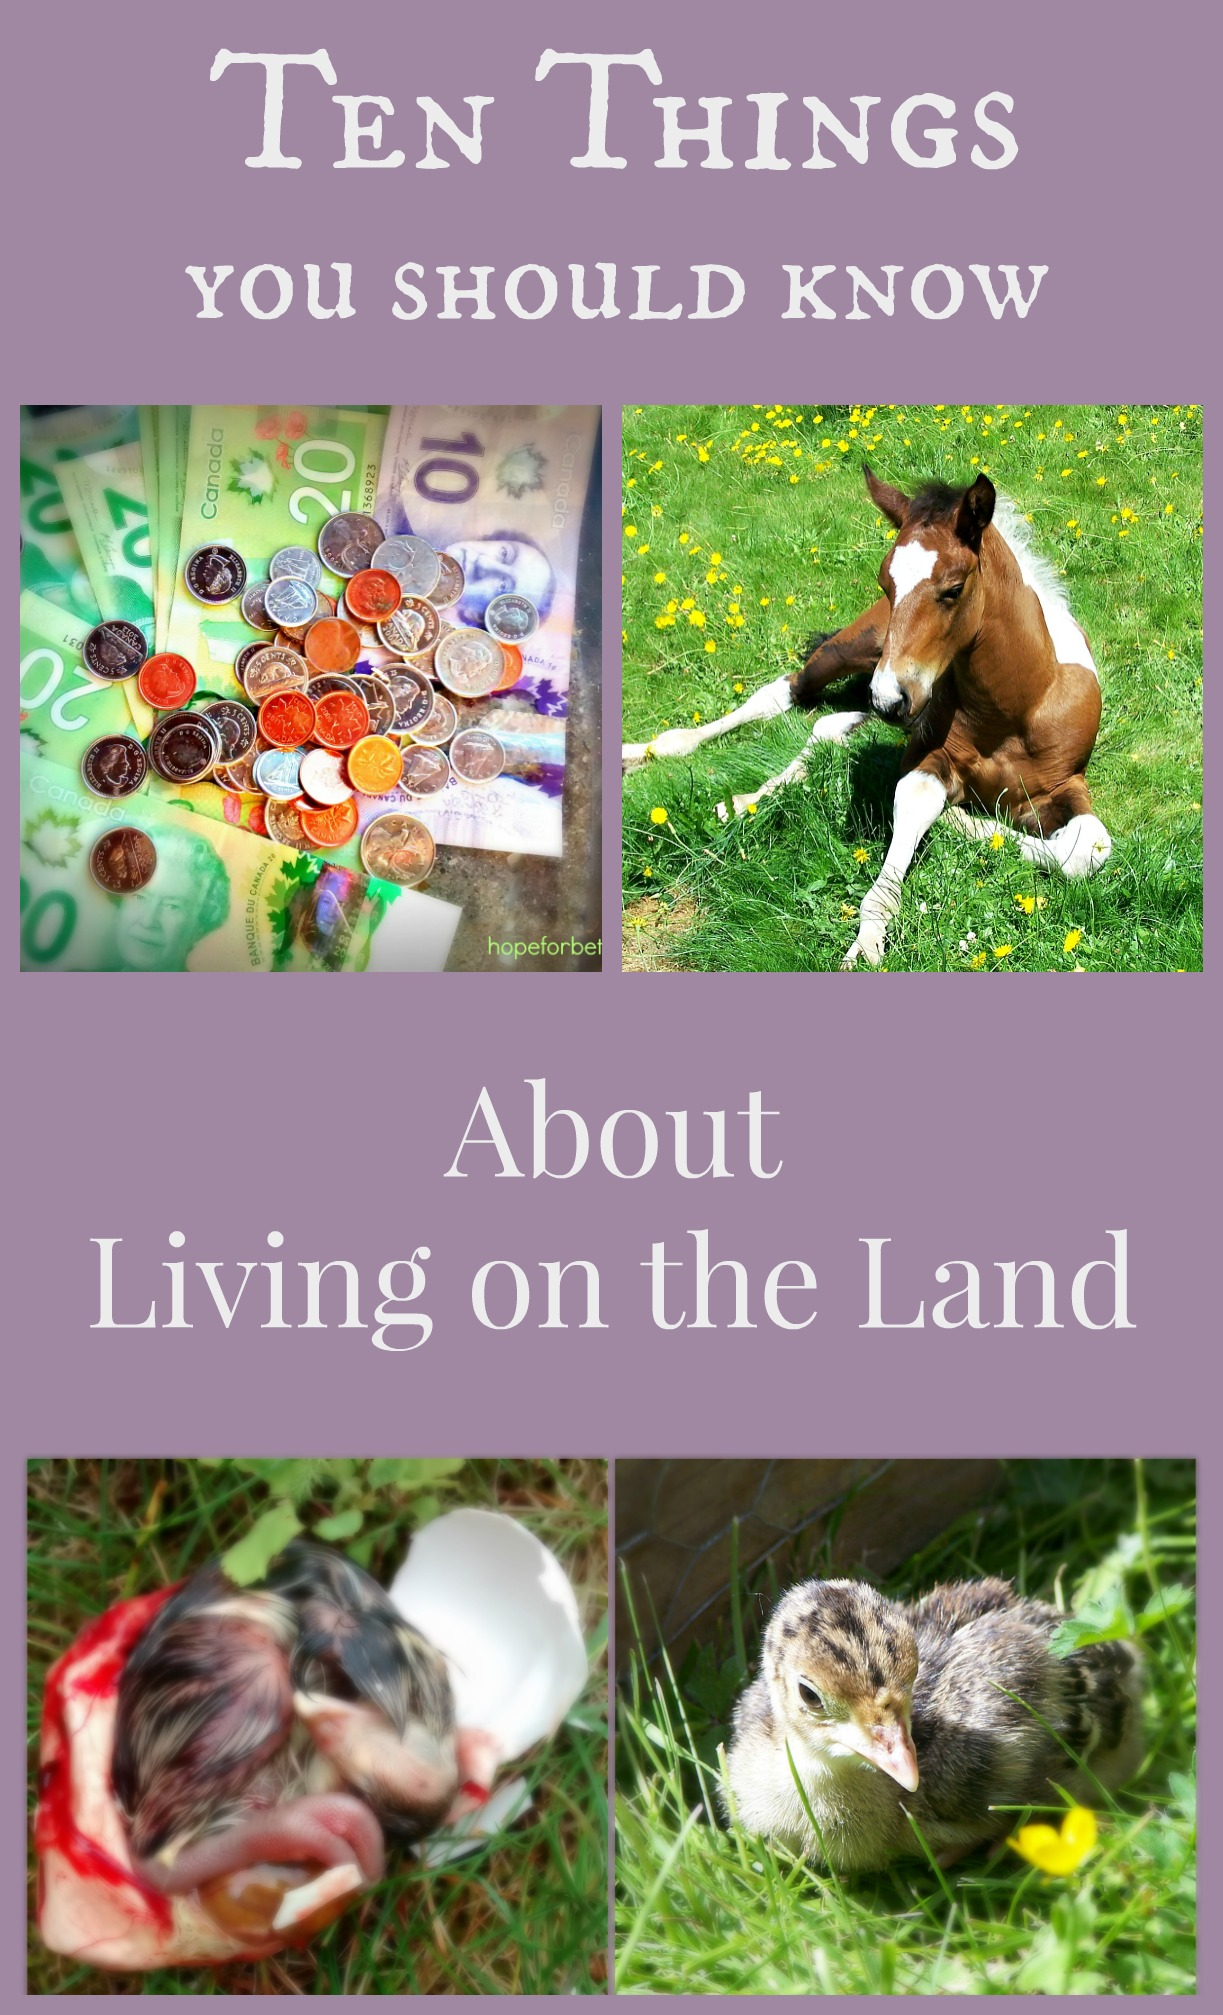 10 Things You Should Consider Before Homesteading